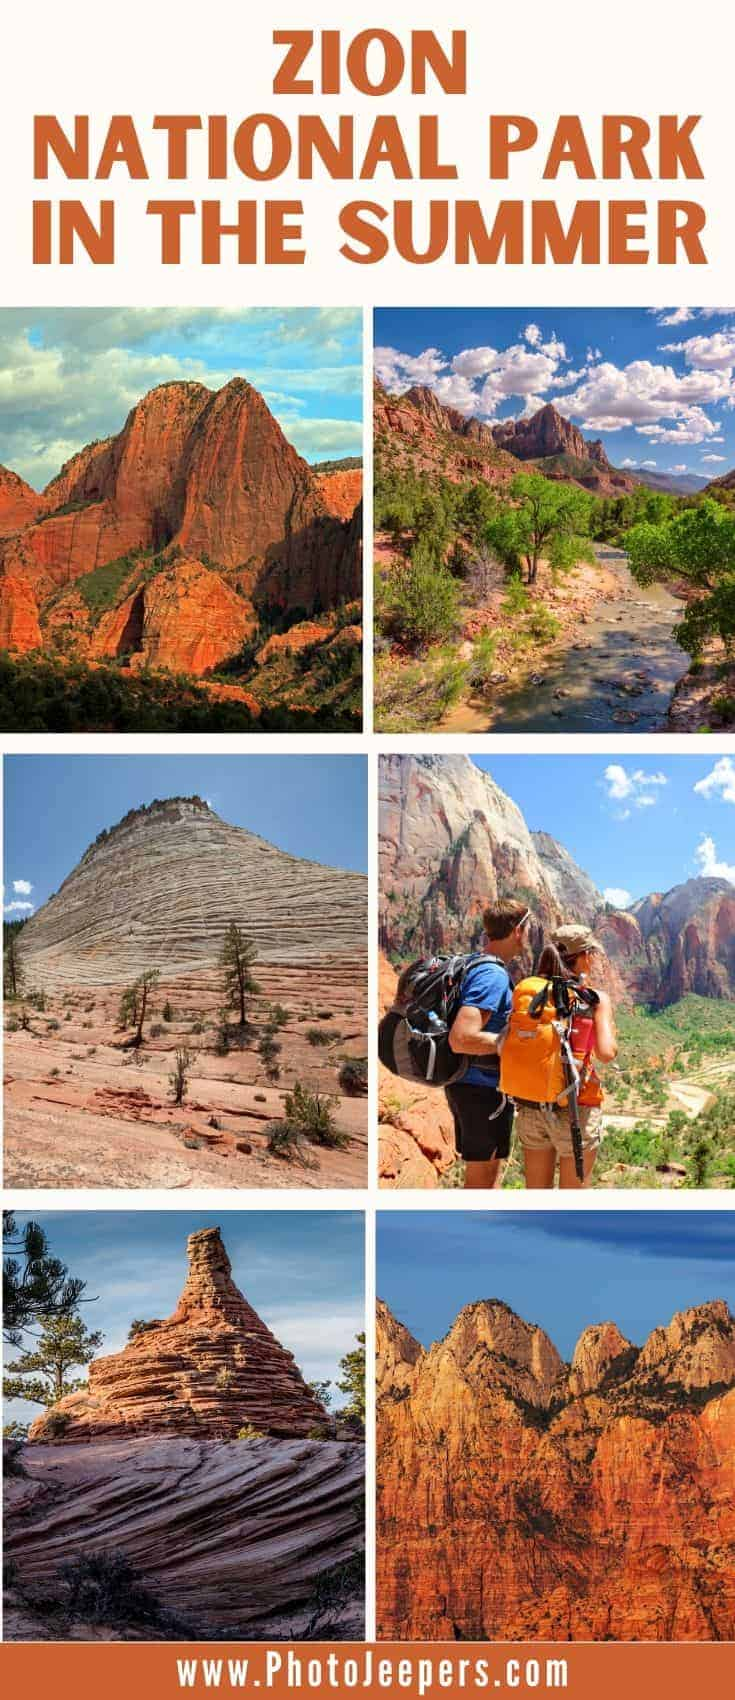 Fun summer activities at Zion National Park. Use this guide to plan your trip to visit Zion in the summer.